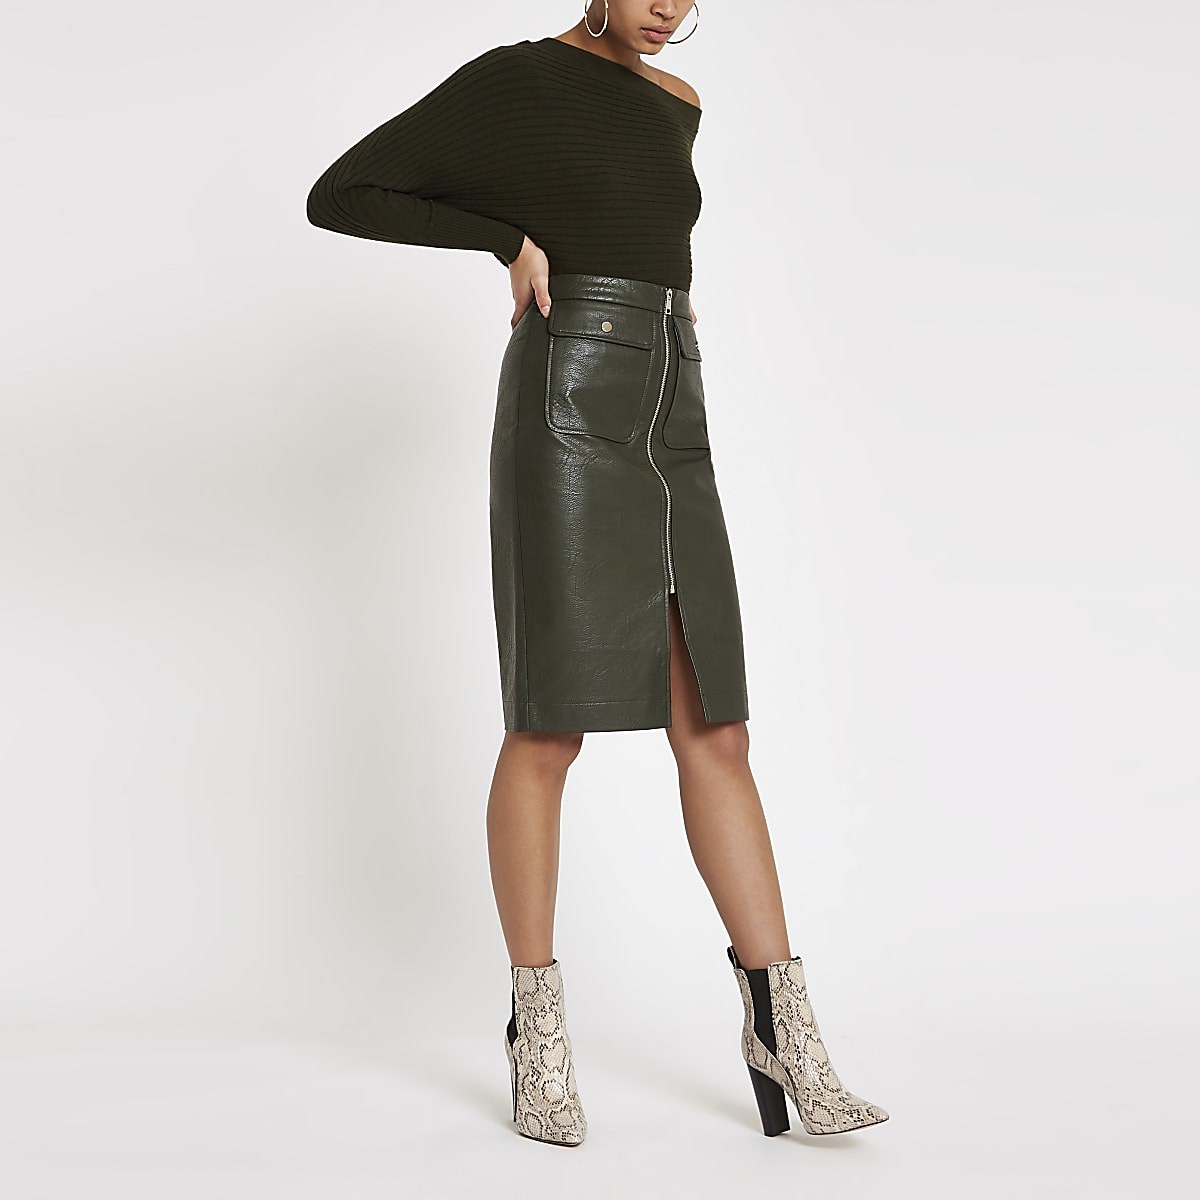 52d962869 Khaki faux leather zip front midi skirt - Midi Skirts - Skirts - women